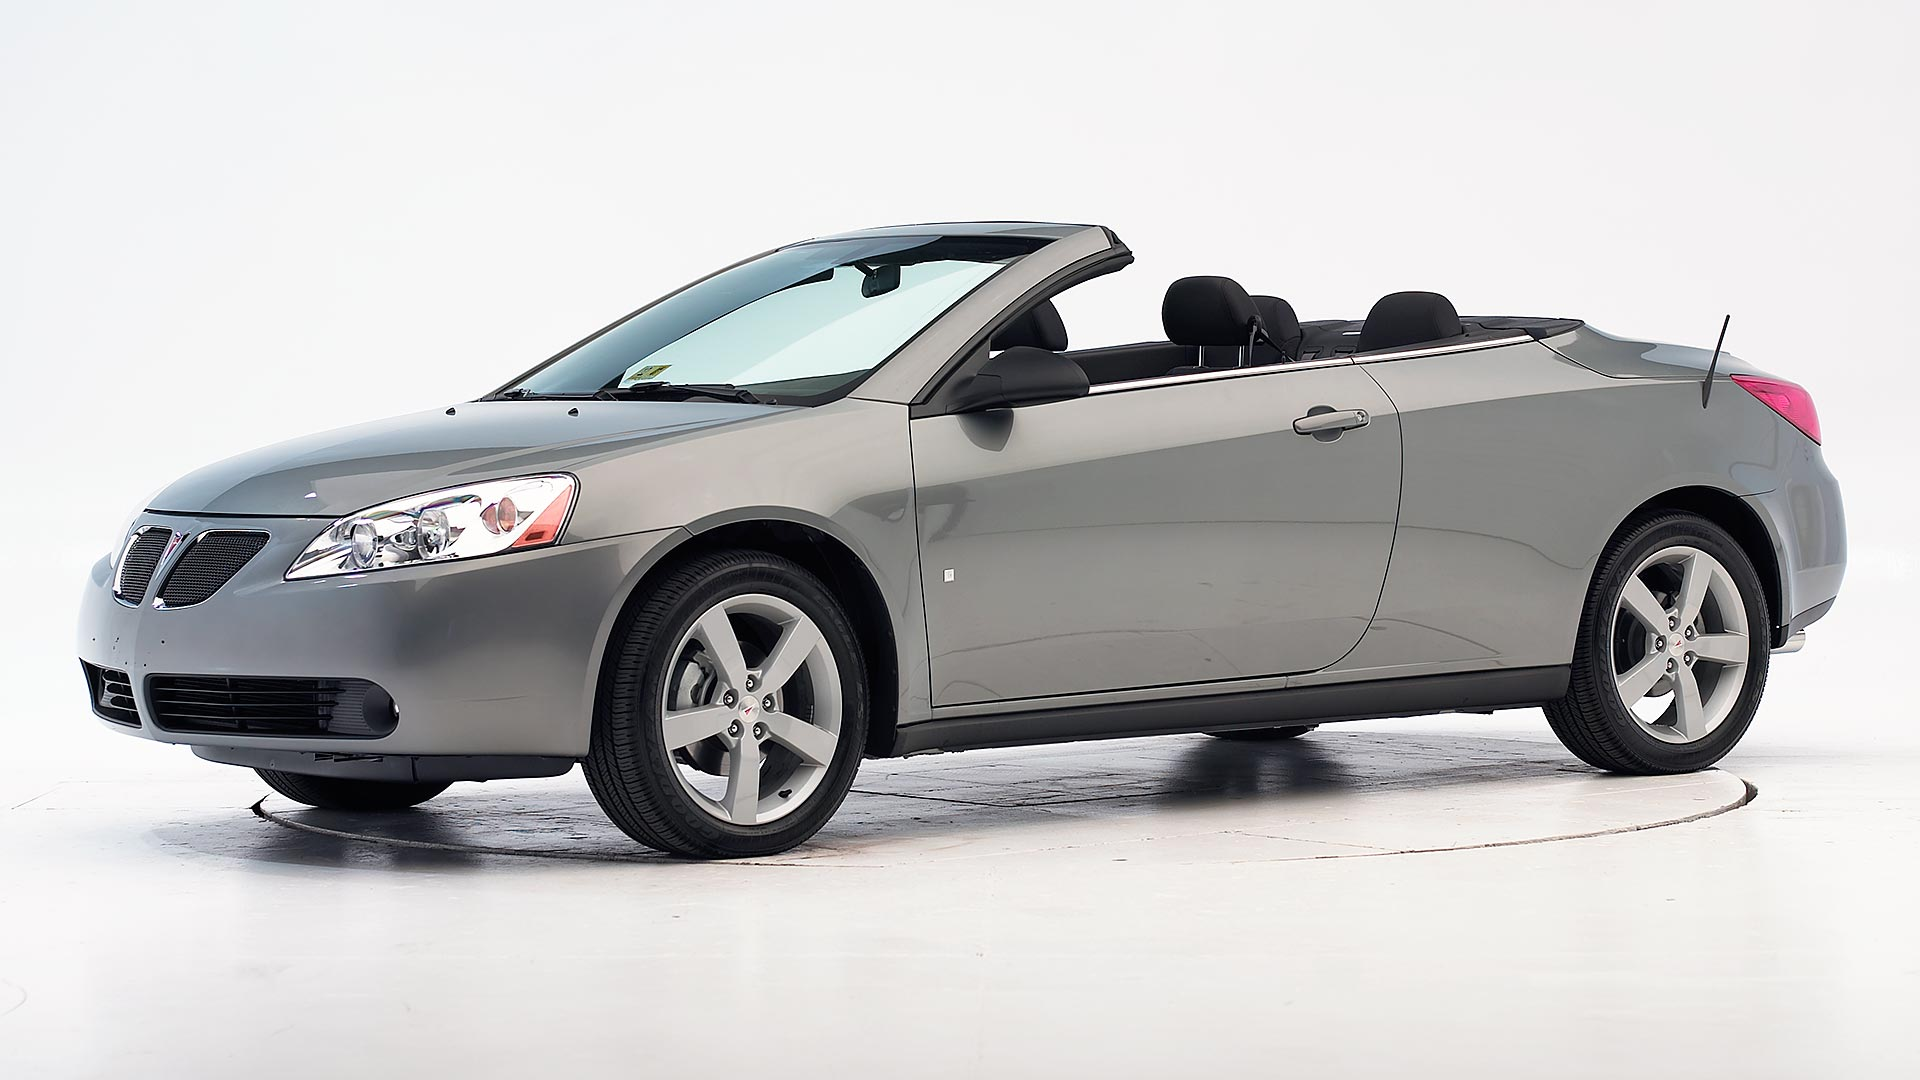 2009 Pontiac G6 2-door convertible